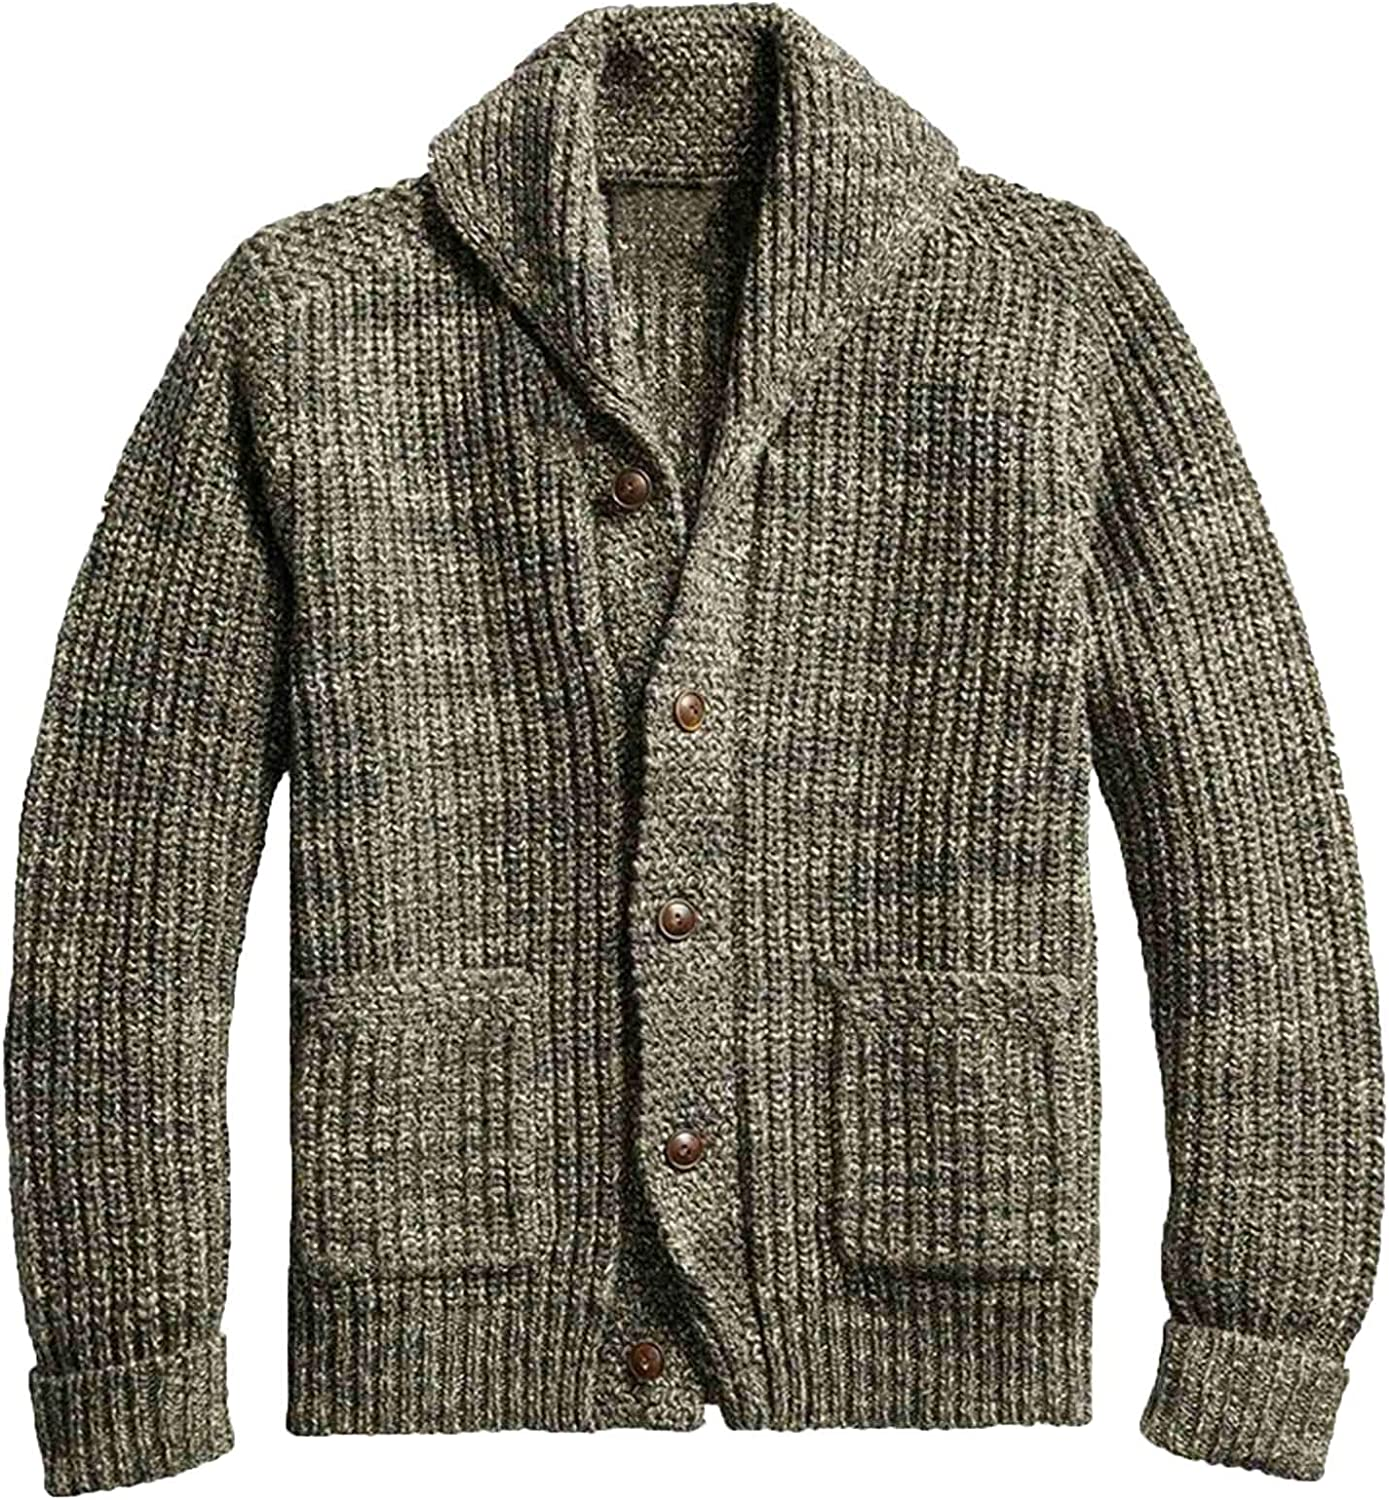 Huangse Men's Chunky Cable Knit Shawl Neck Button Down Open Front Cardigan Sweater Knitted Cardigan Sweater